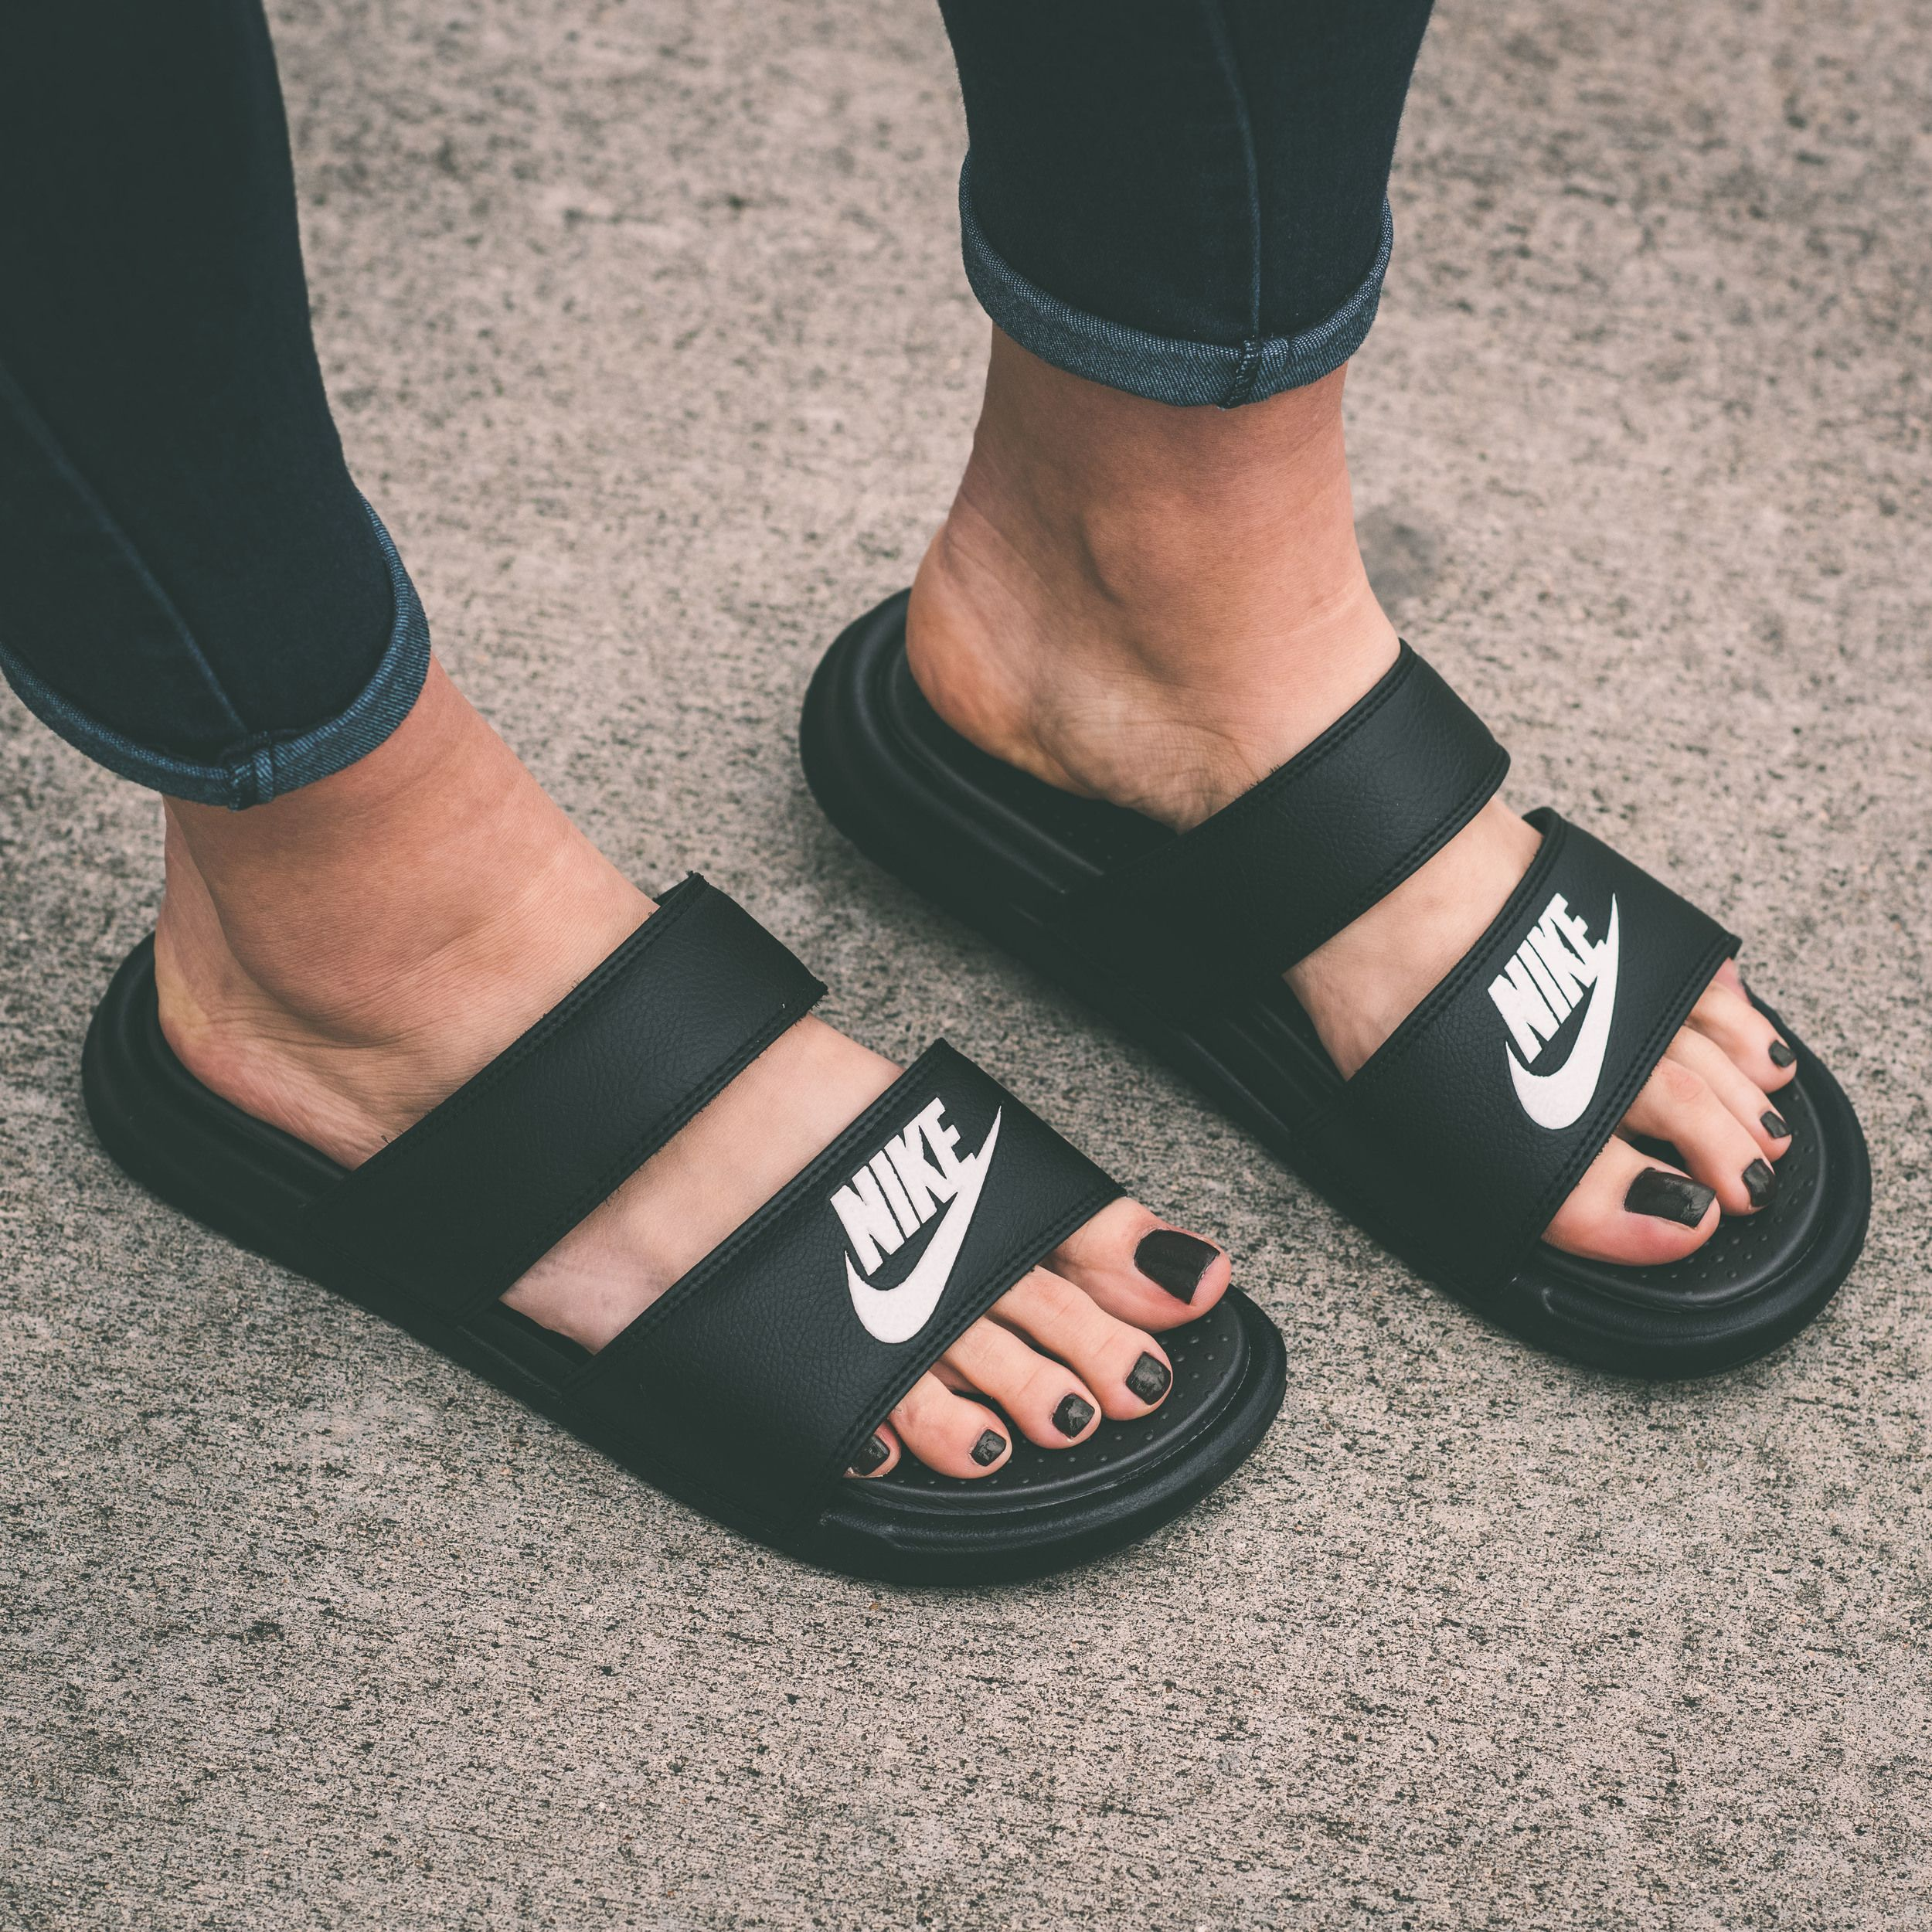 Nike has modified the Benassi slide from traditional to sporty with a new  distinct silhouette. A duo of synthetic leather straps overlay the forefoot  in ... 0f6bff2c9d